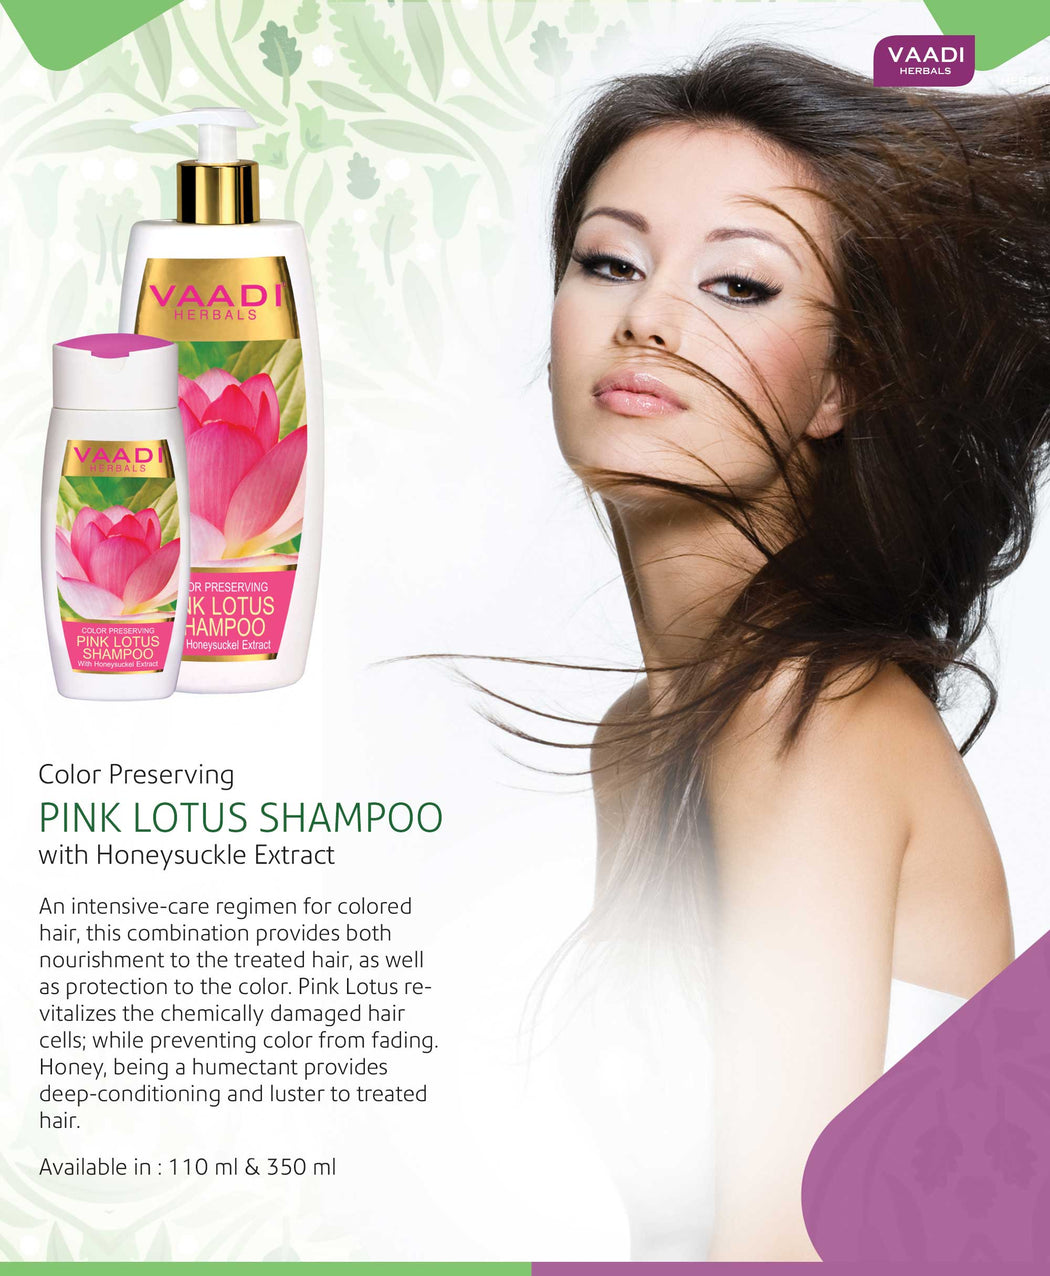 Color Preserving Organic Pink Lotus Shampoo with Honeysuckle Extract (110ml / 4 fl oz)